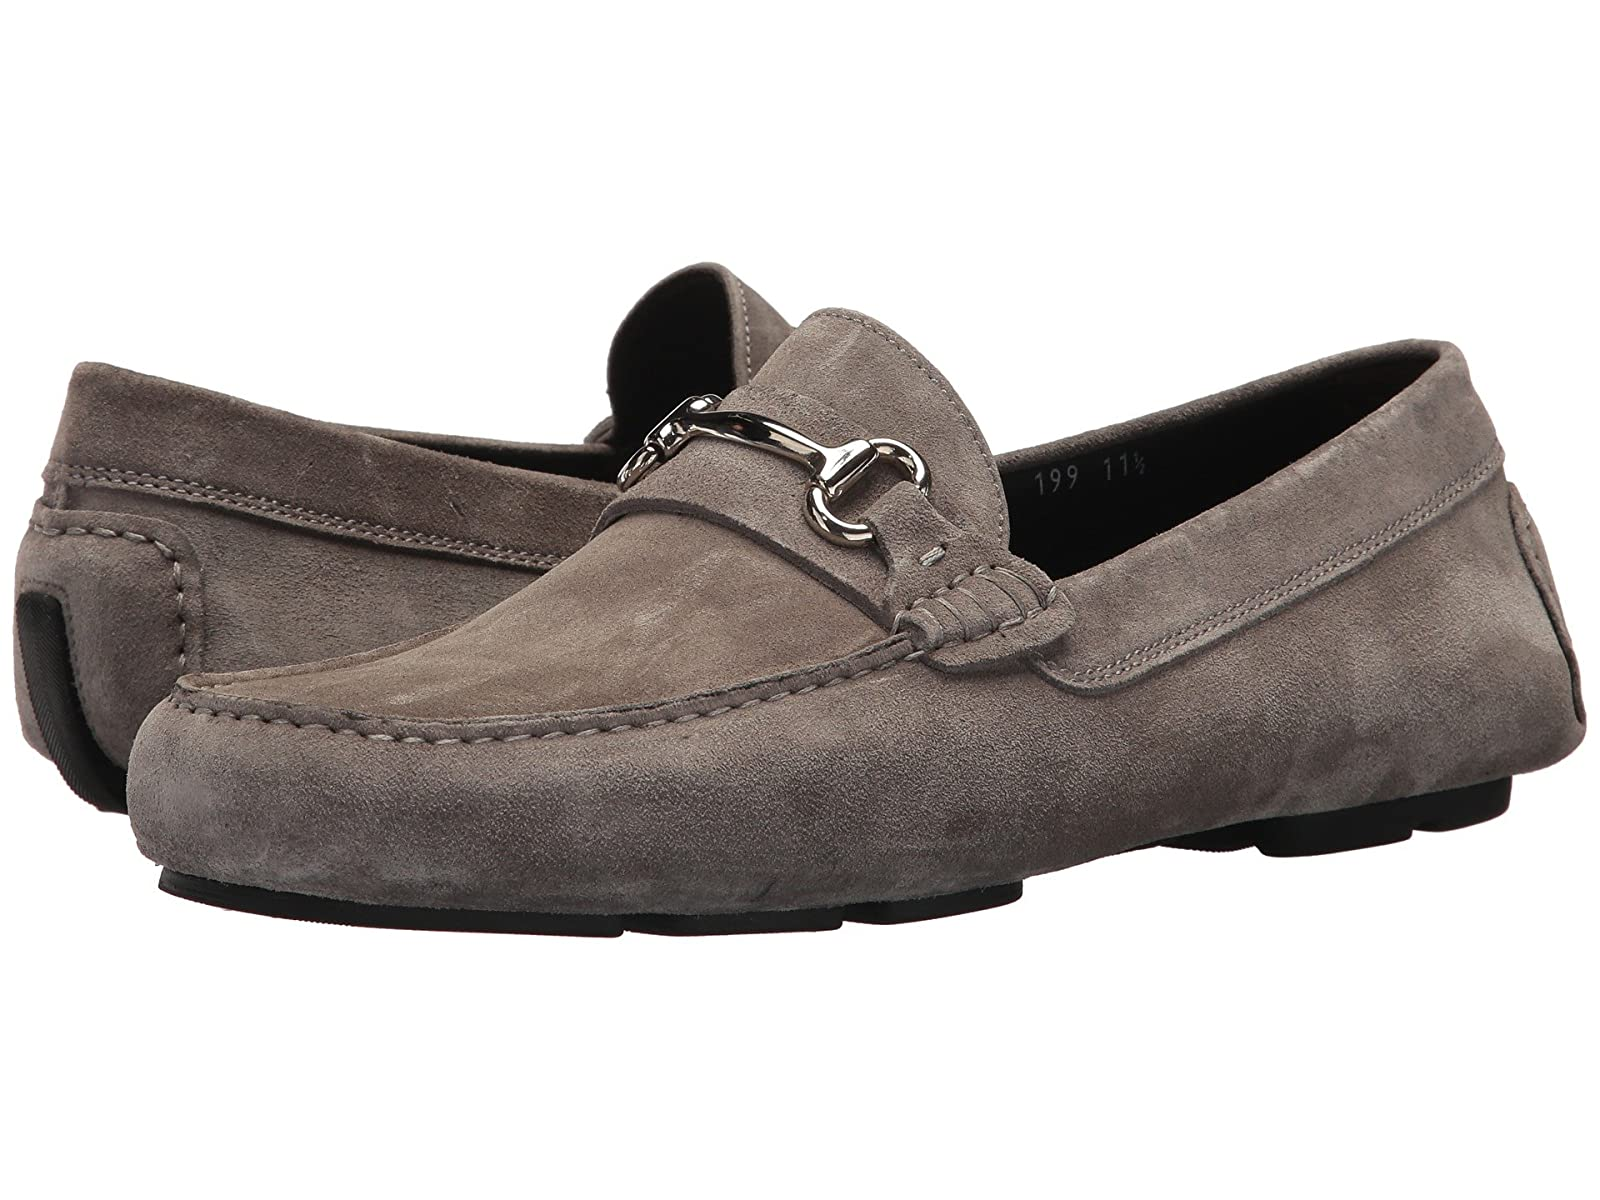 To Boot New York Del AmoAtmospheric grades have affordable shoes